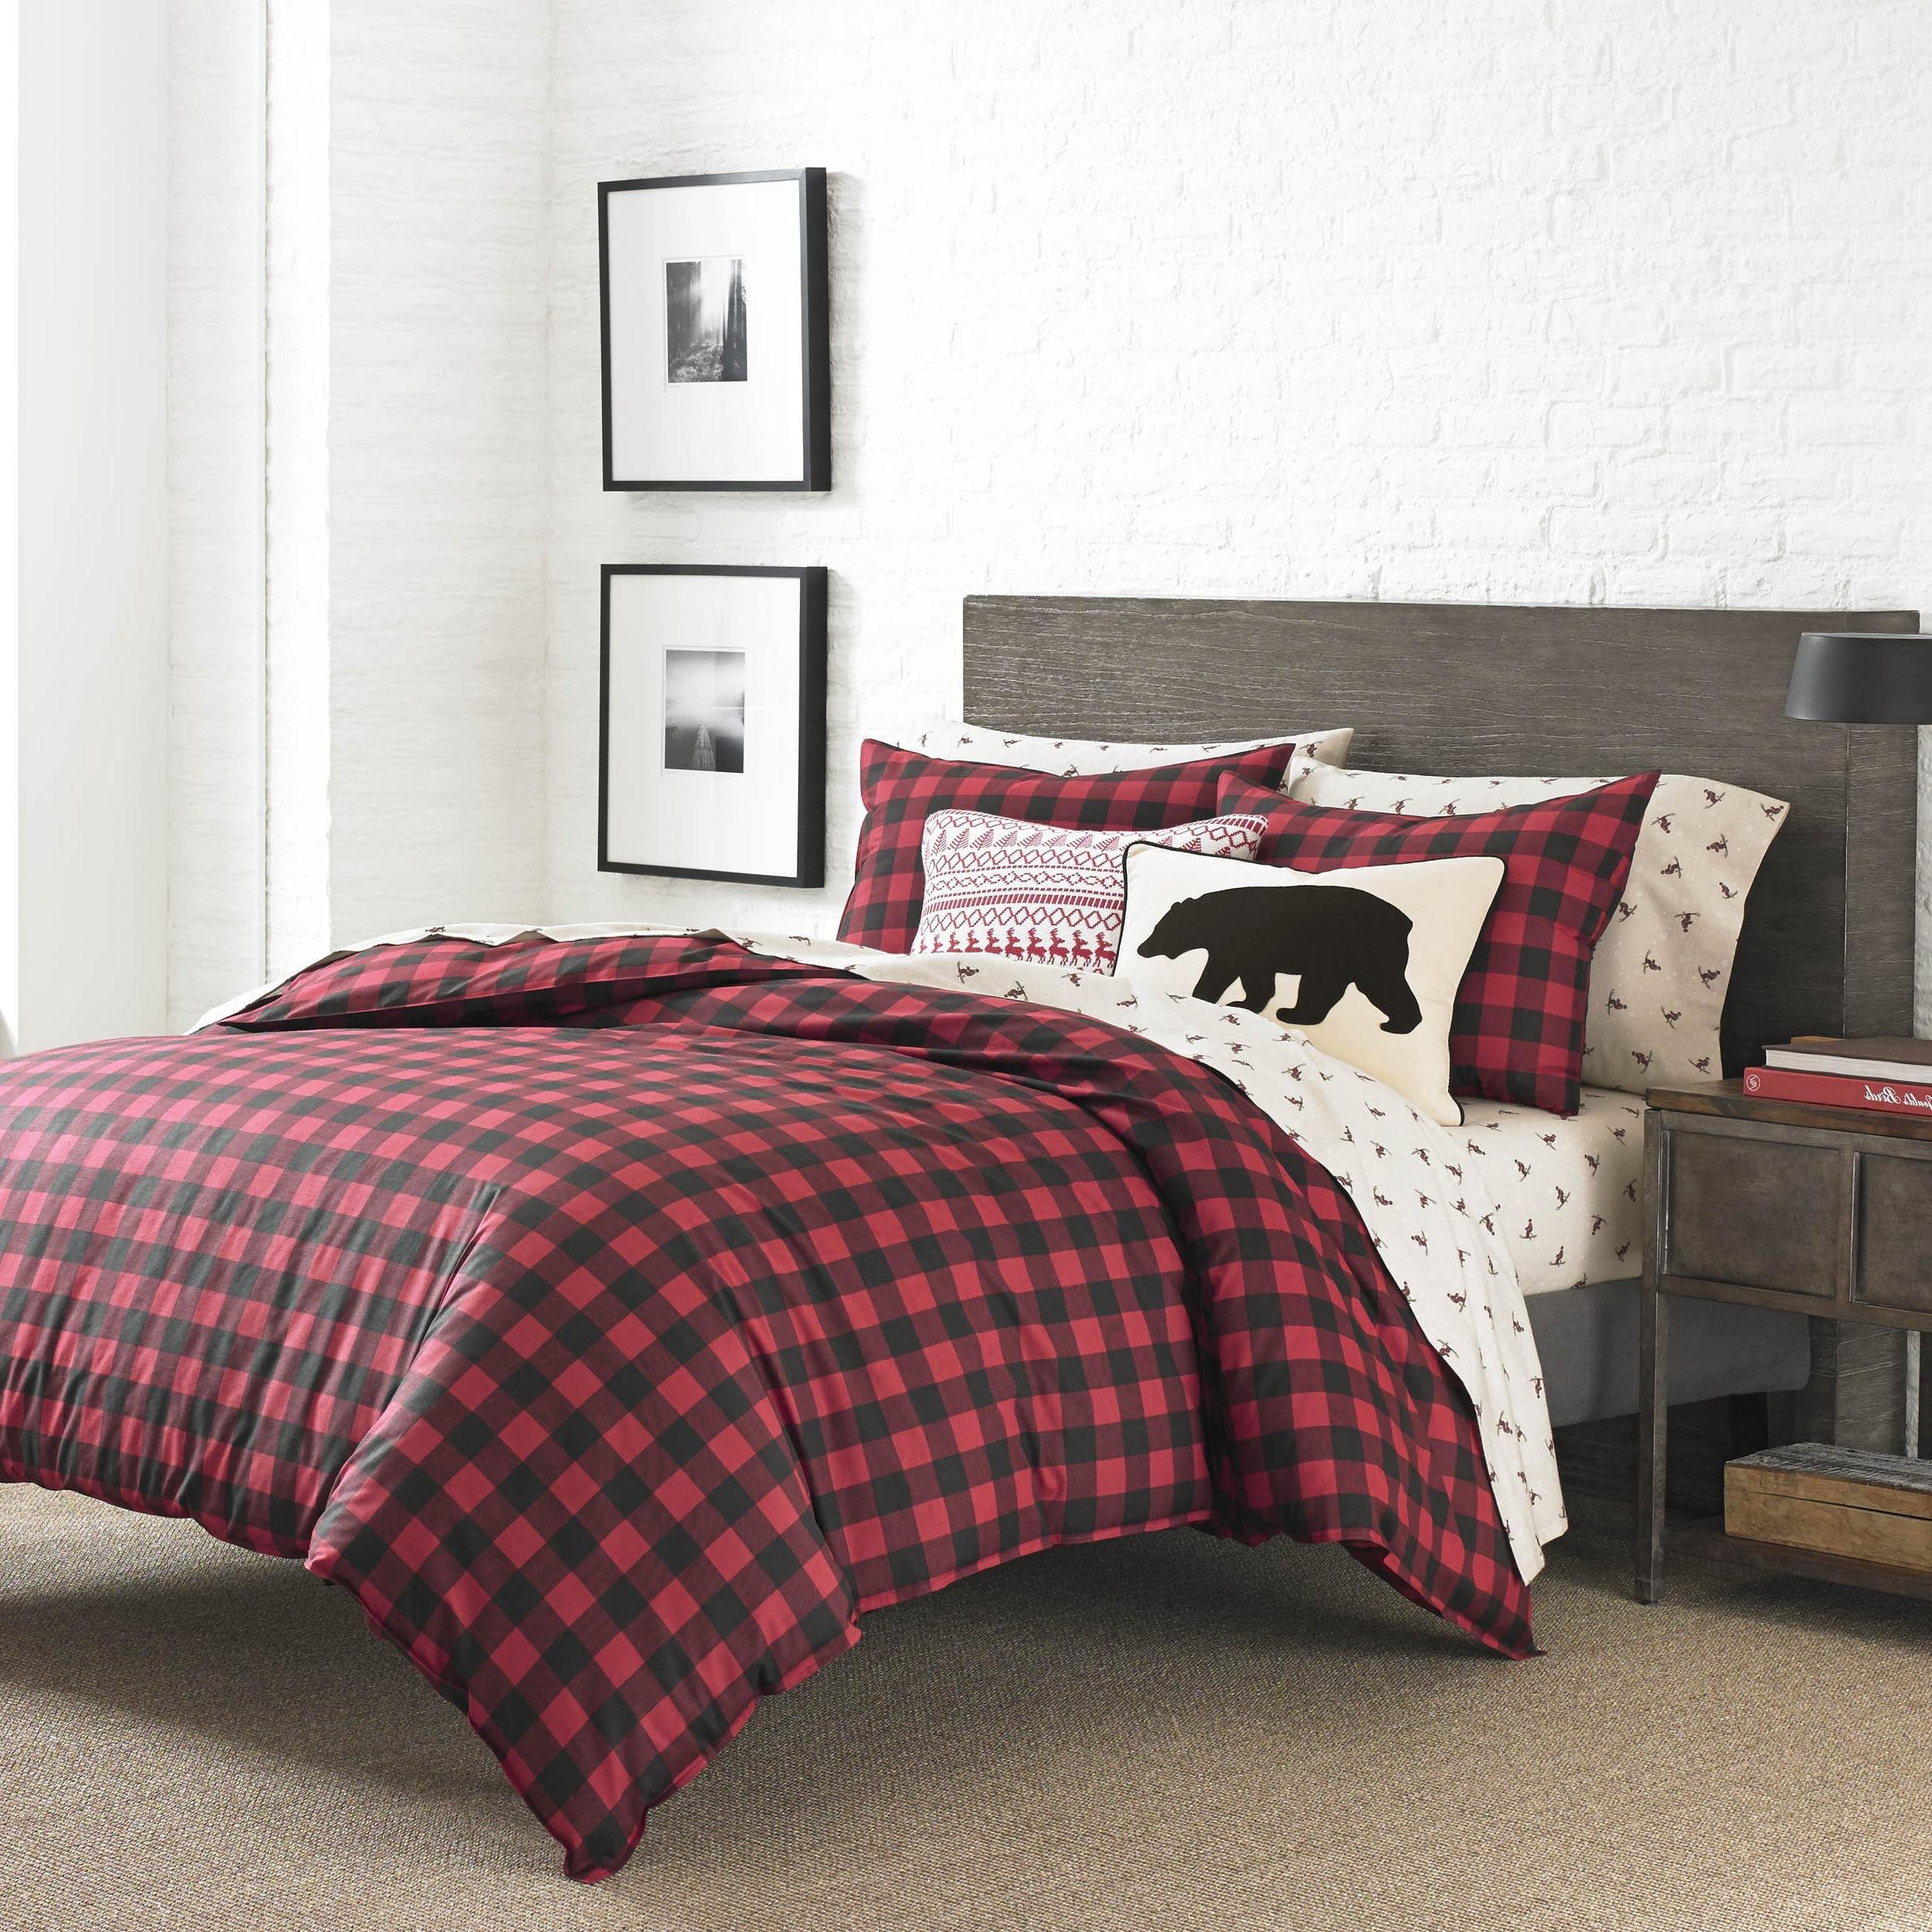 MP 3 Piece Vibrant Red Plaid Full Queen Size Duvet Cover Set, Cabin Themed Lodge Country Checkered Bedding Squared Tartan Madras Rustic Lumberjack Pattern Cottage Checked Woods,Cotton, Percale Cotton